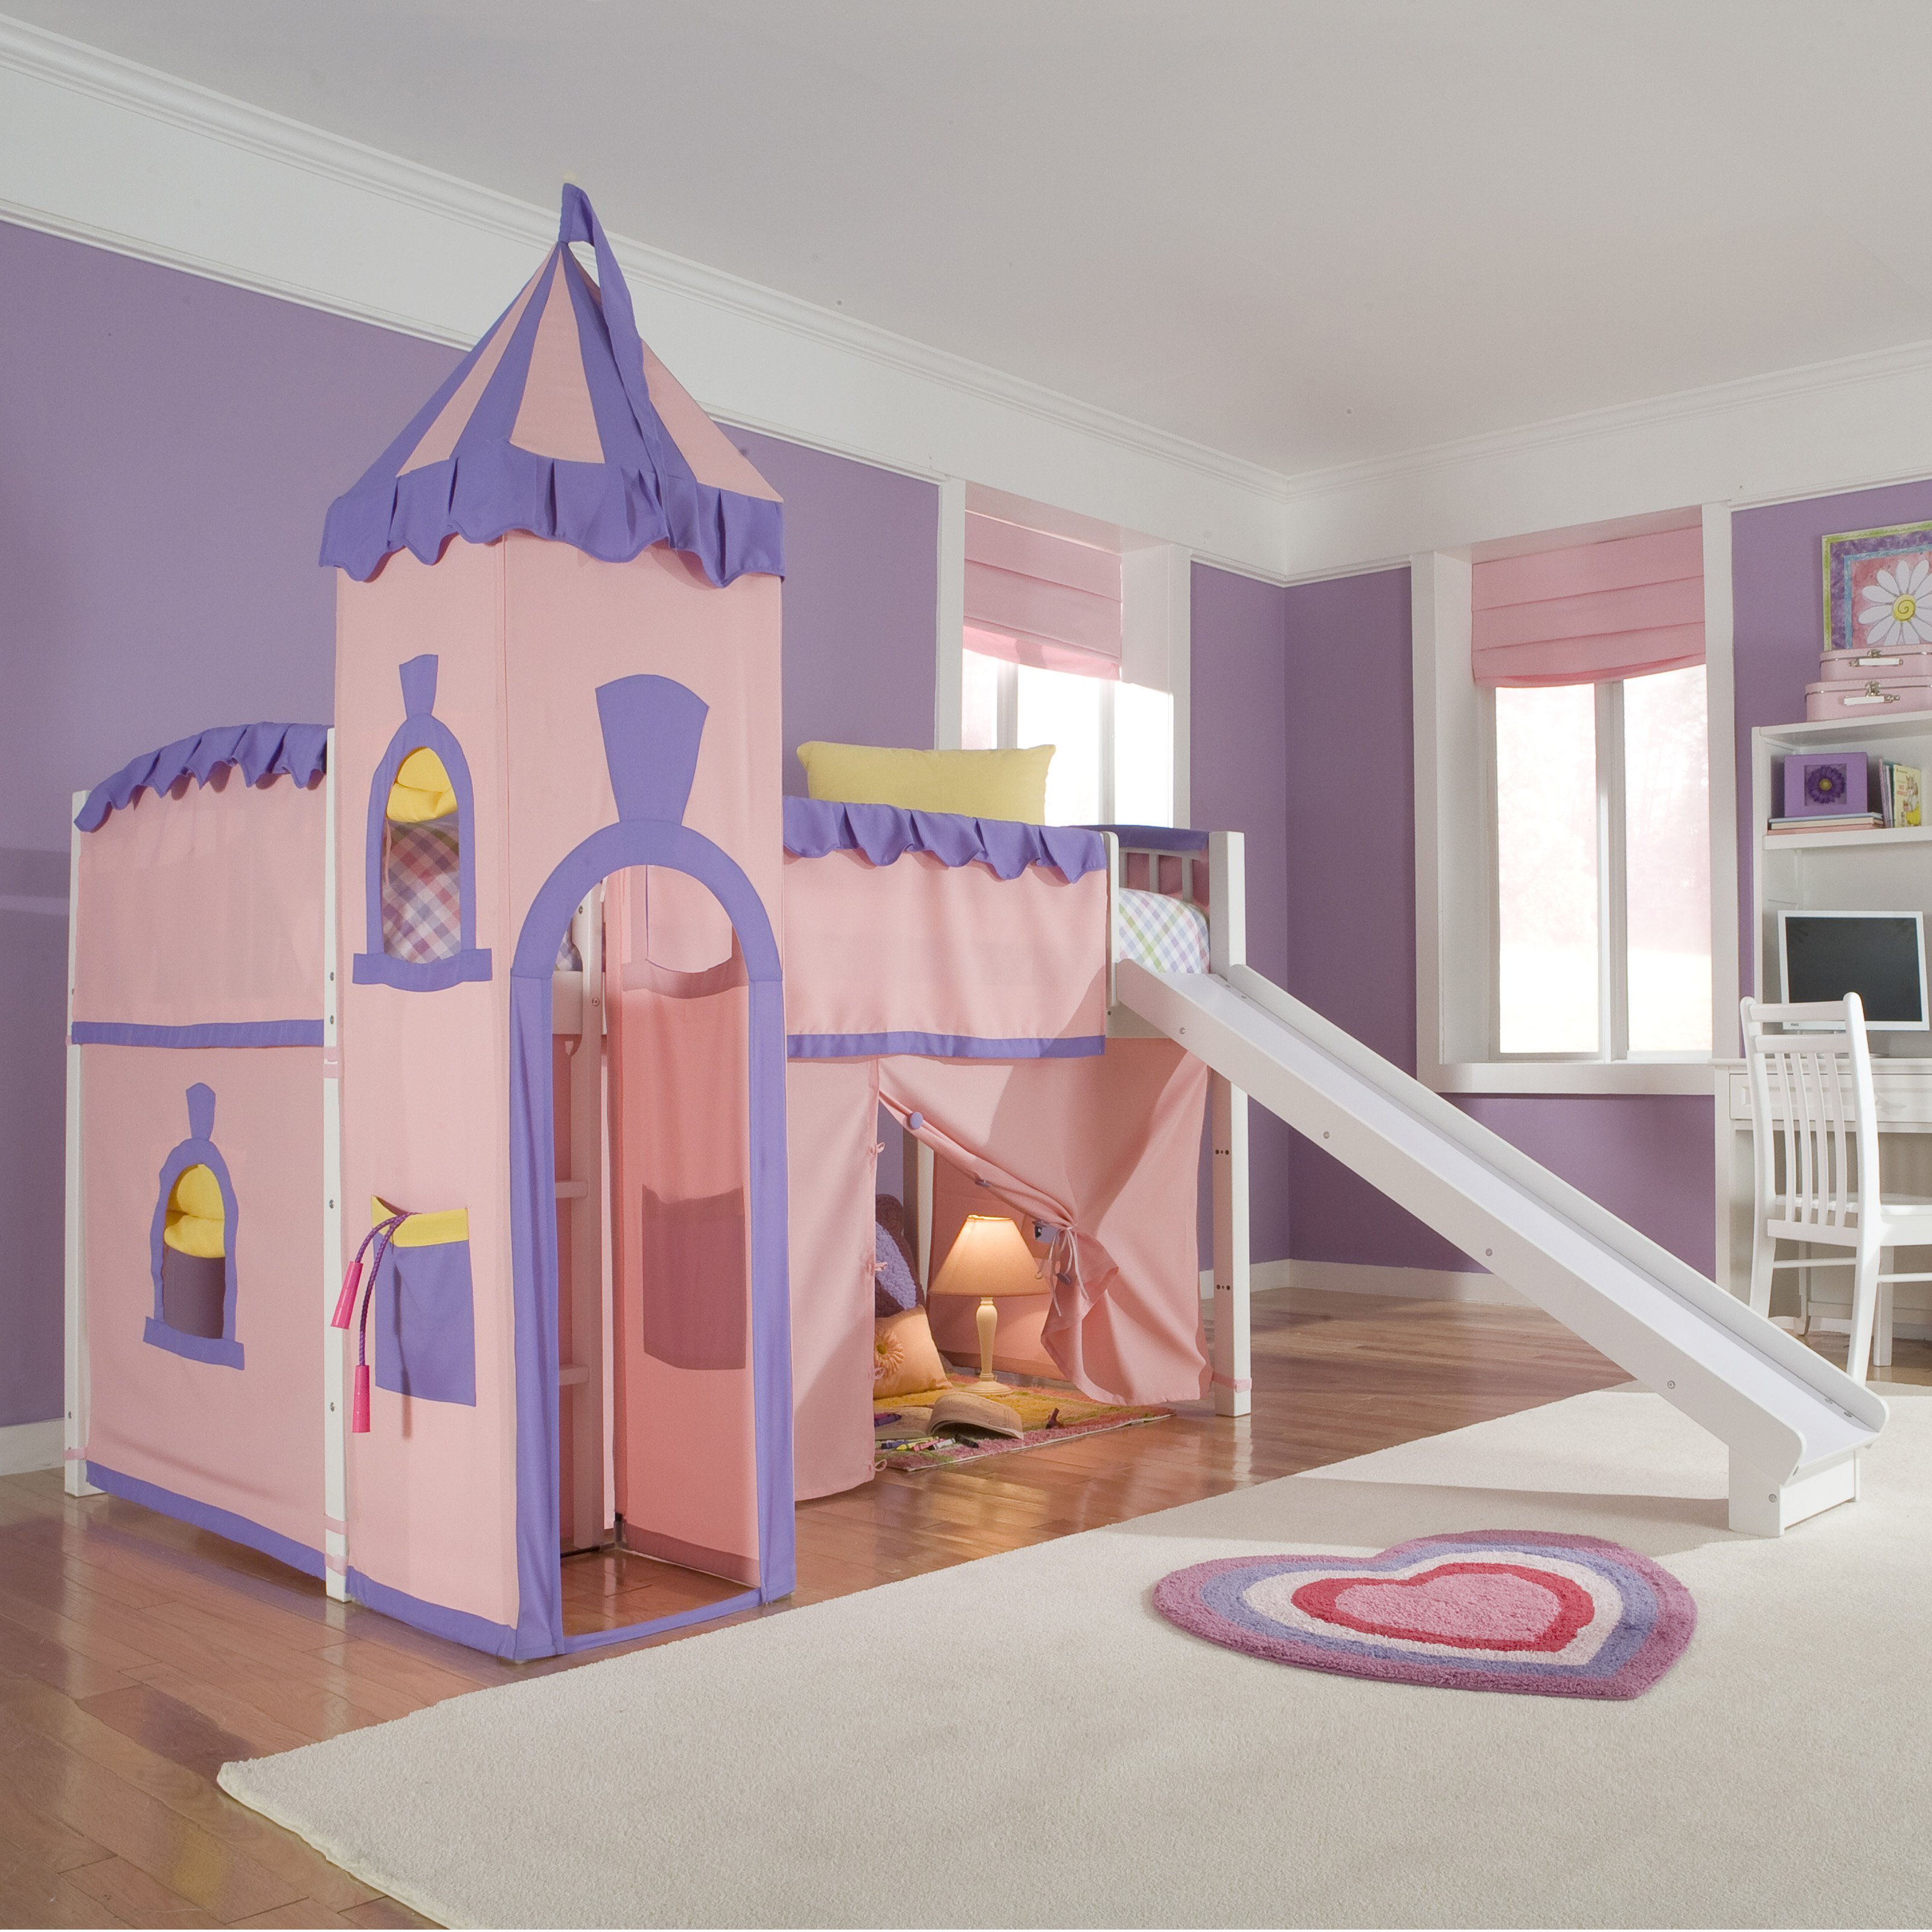 Featured Photo of Kid Rooms: The Playground Of Kids